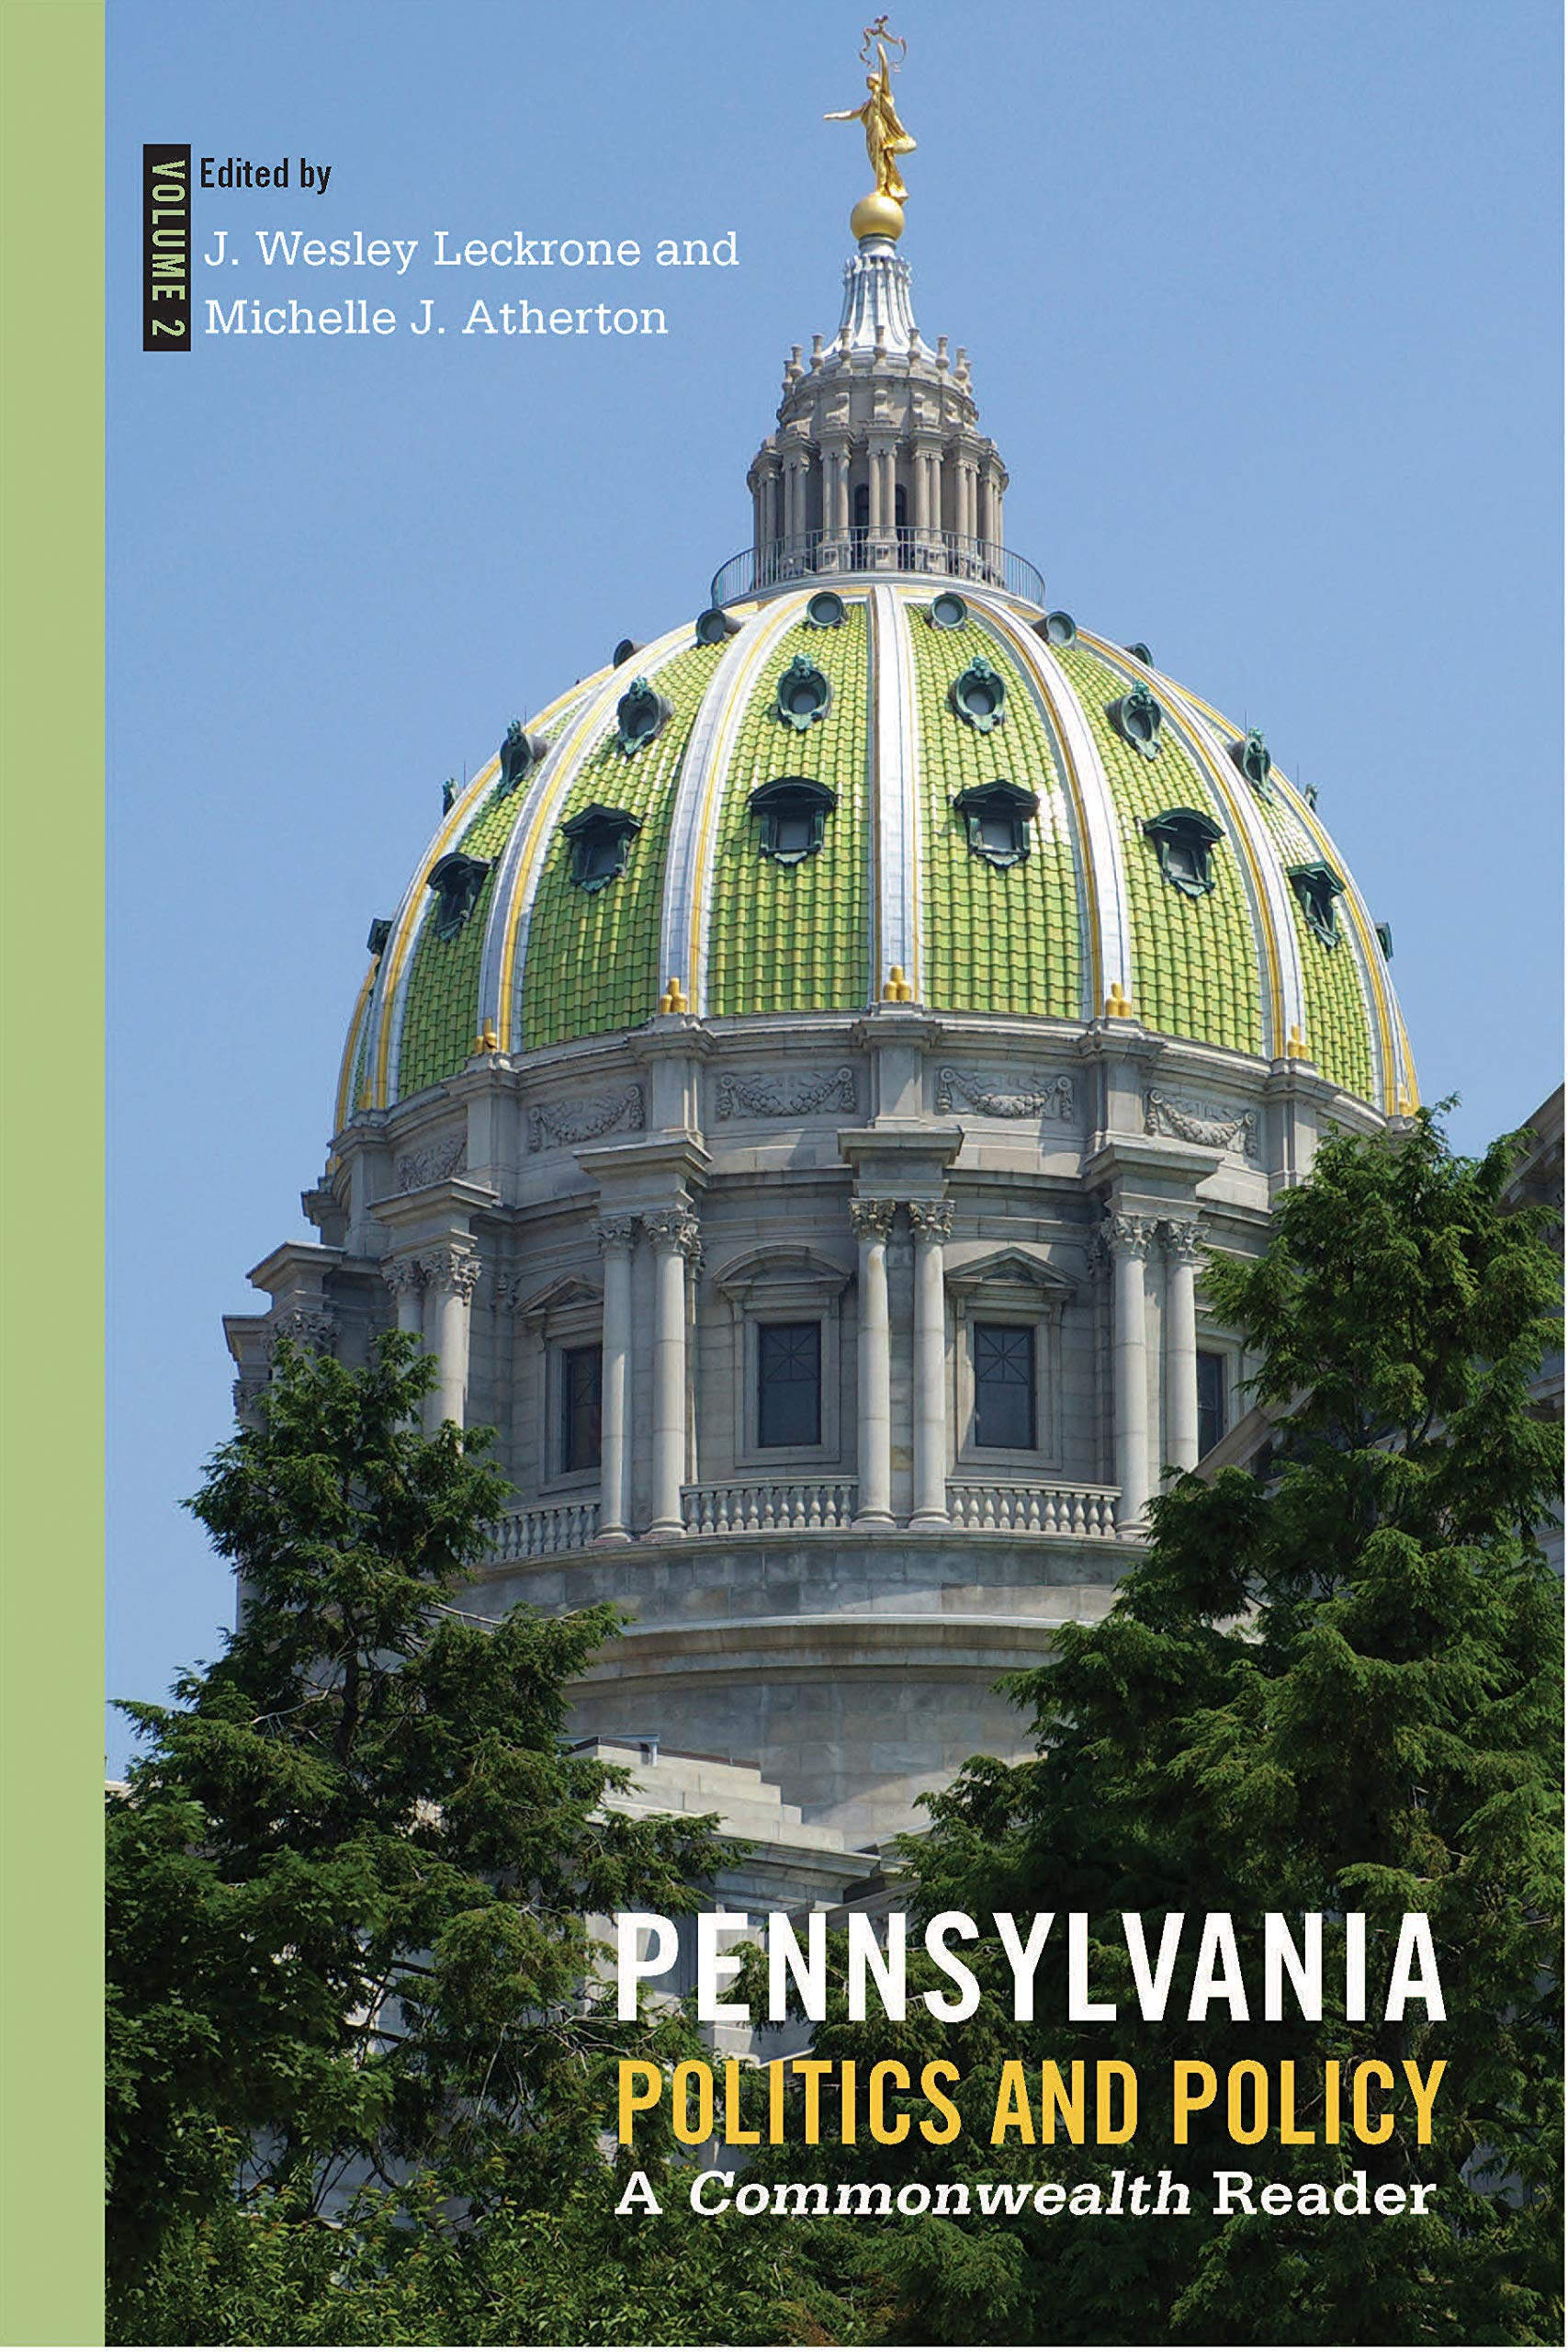 Pennsylvania Politics and Policy, Volume 2: A Commonwealth Reader